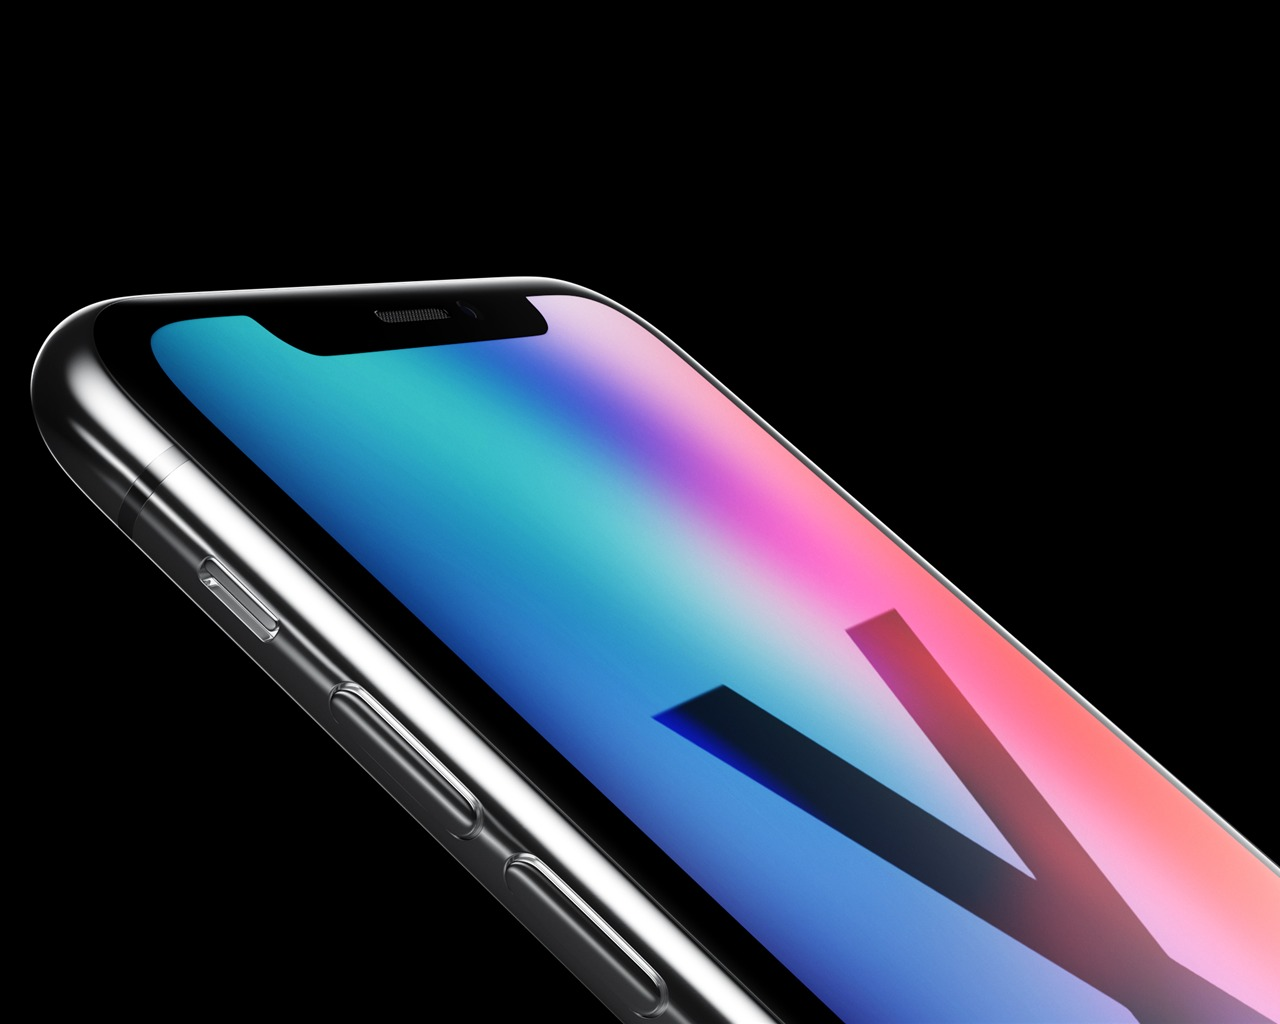 Iphone X Wallpaper Hd: Apple 2017 IPhone X IPhone 10 HD Wallpaper 07 Preview